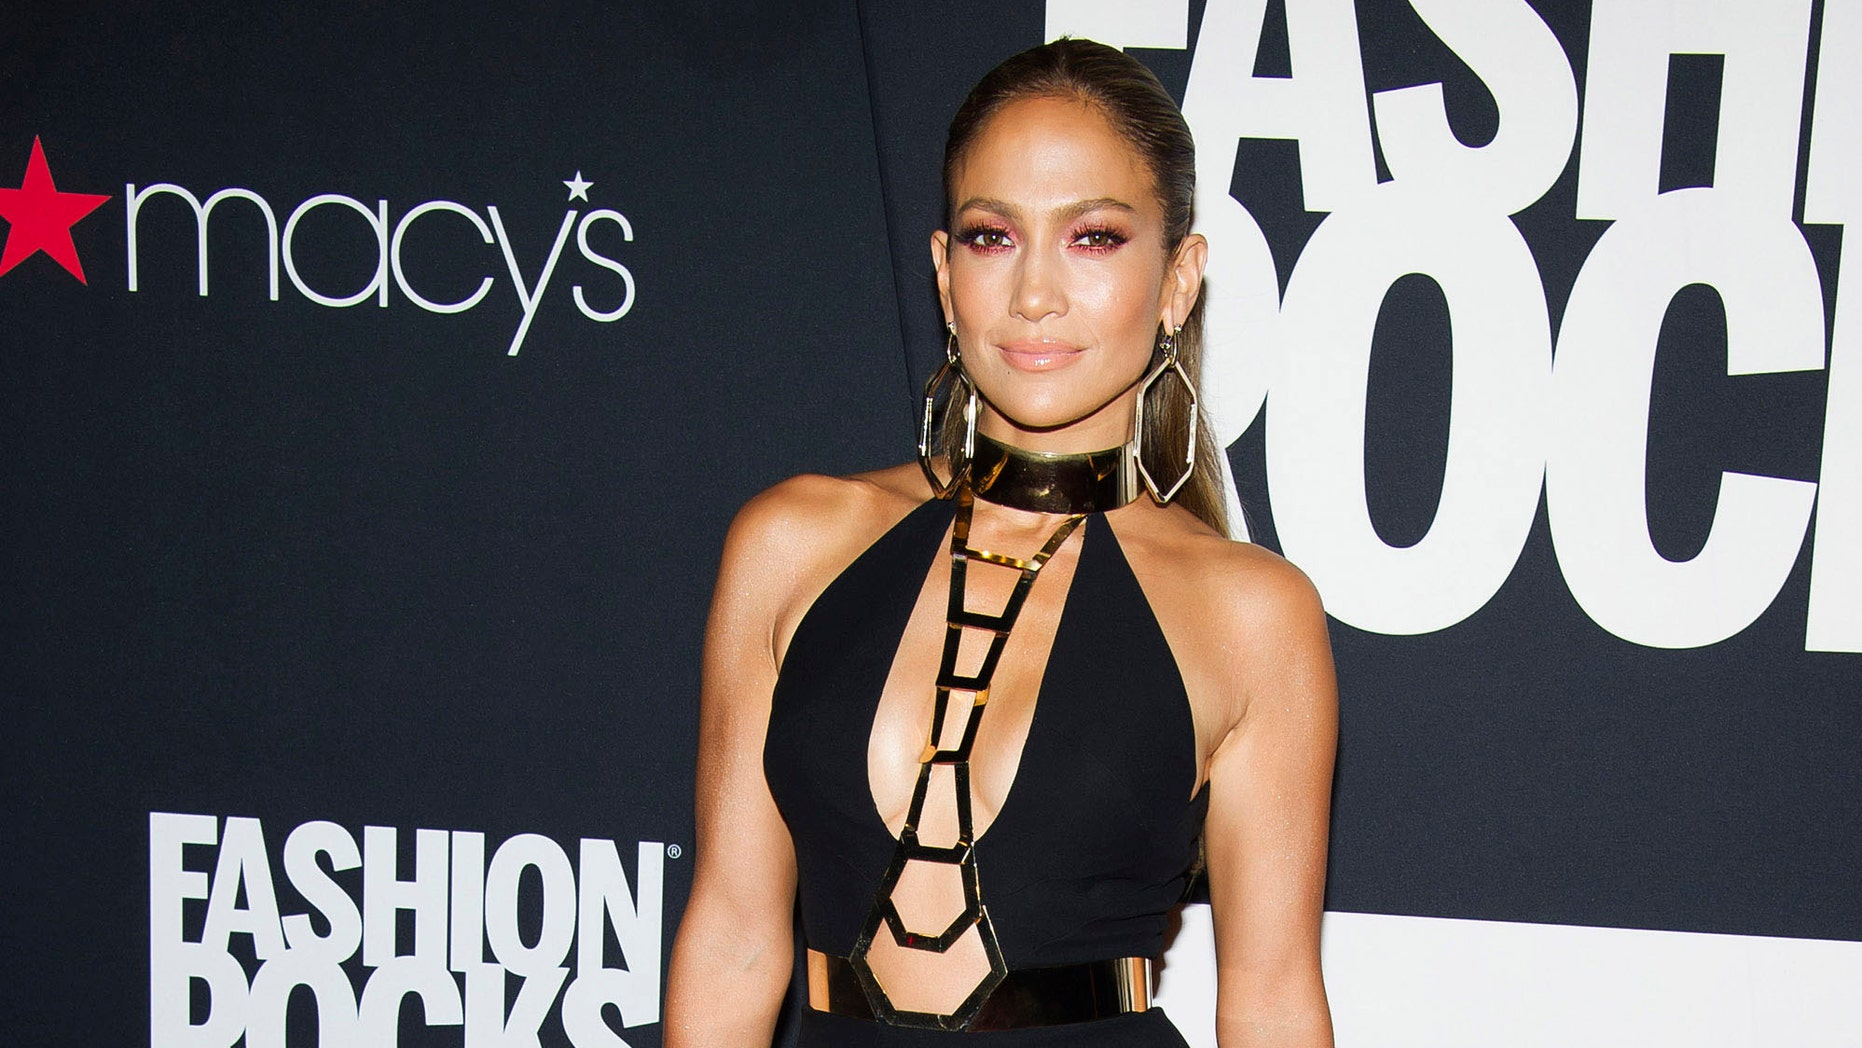 Jennifer Lopez attends Fashion Rocks on Tuesday, Sept. 9, 2014 at the Barclays Center in the Brooklyn borough of New York. (Photo by Charles Sykes/Invision/AP). (Photo by Charles Sykes/Invision/AP)